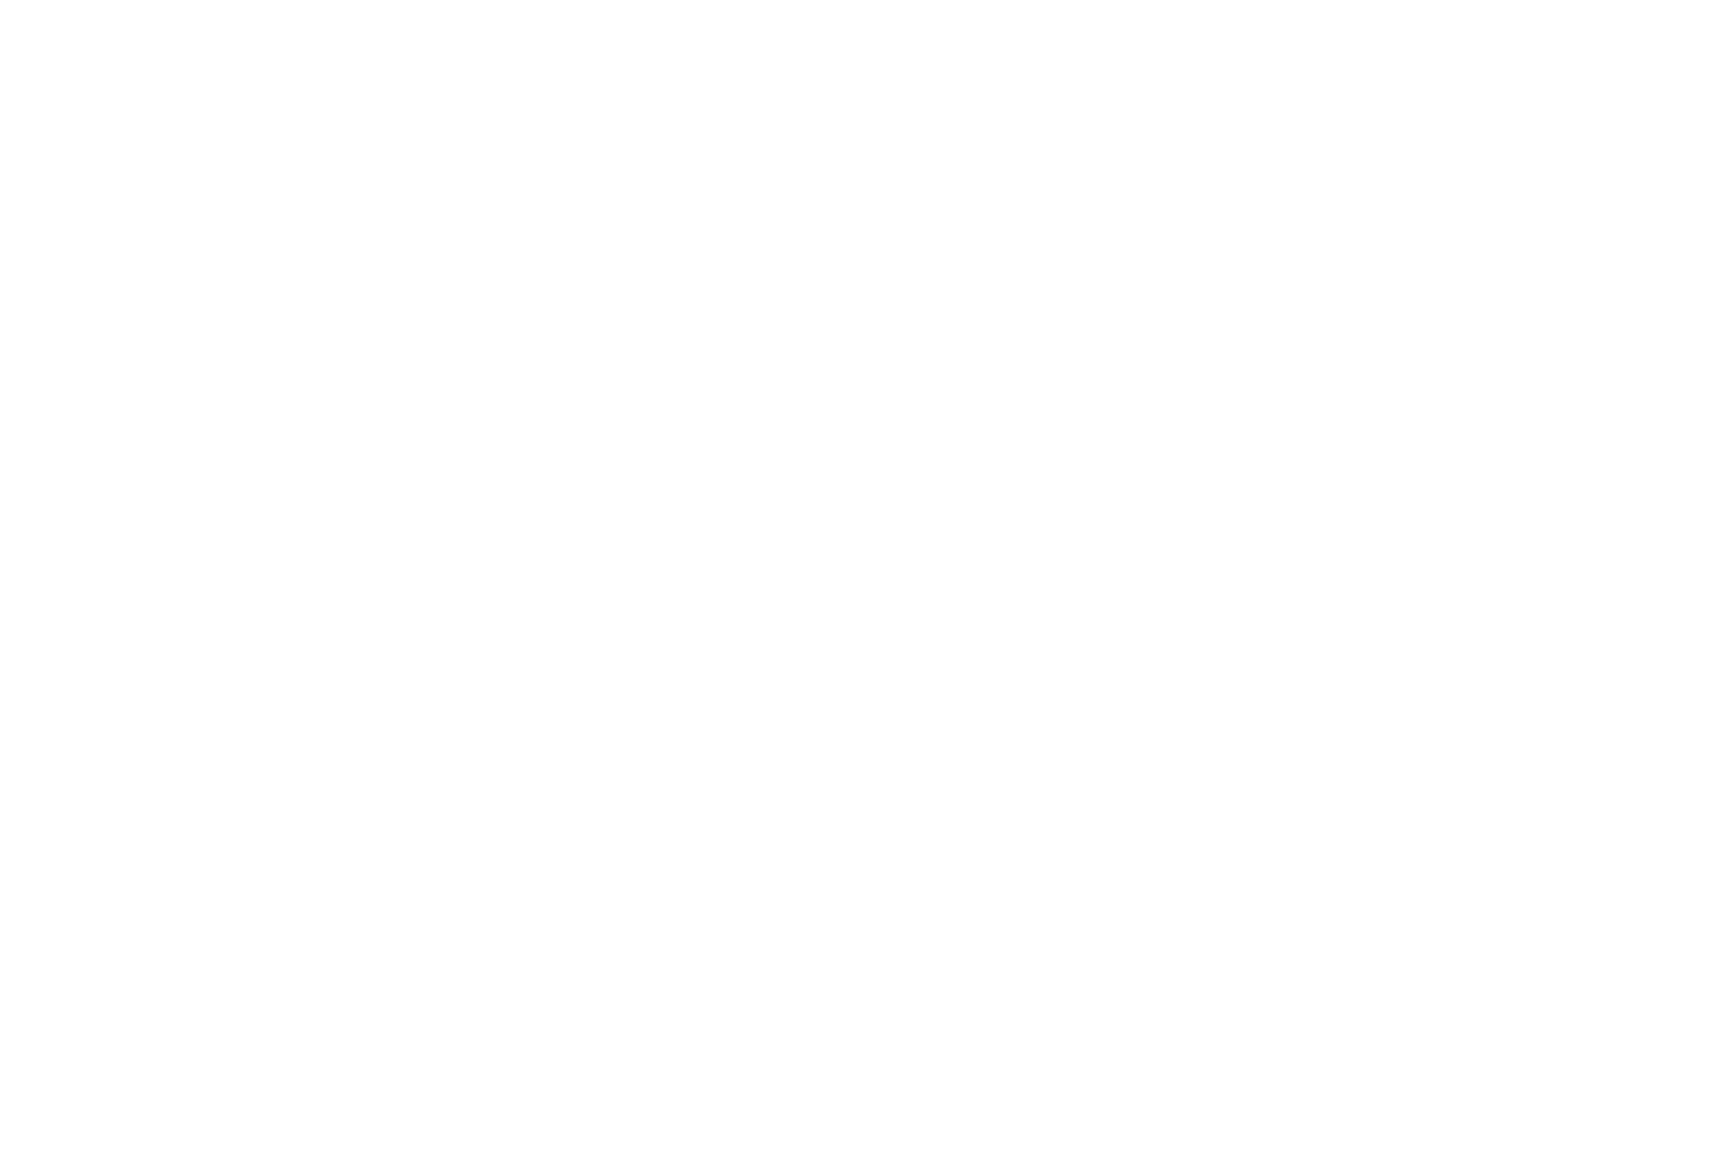 OFFICIAL SELECTION - STIFF Seattle True Independent Film Festival - 2020 (4)